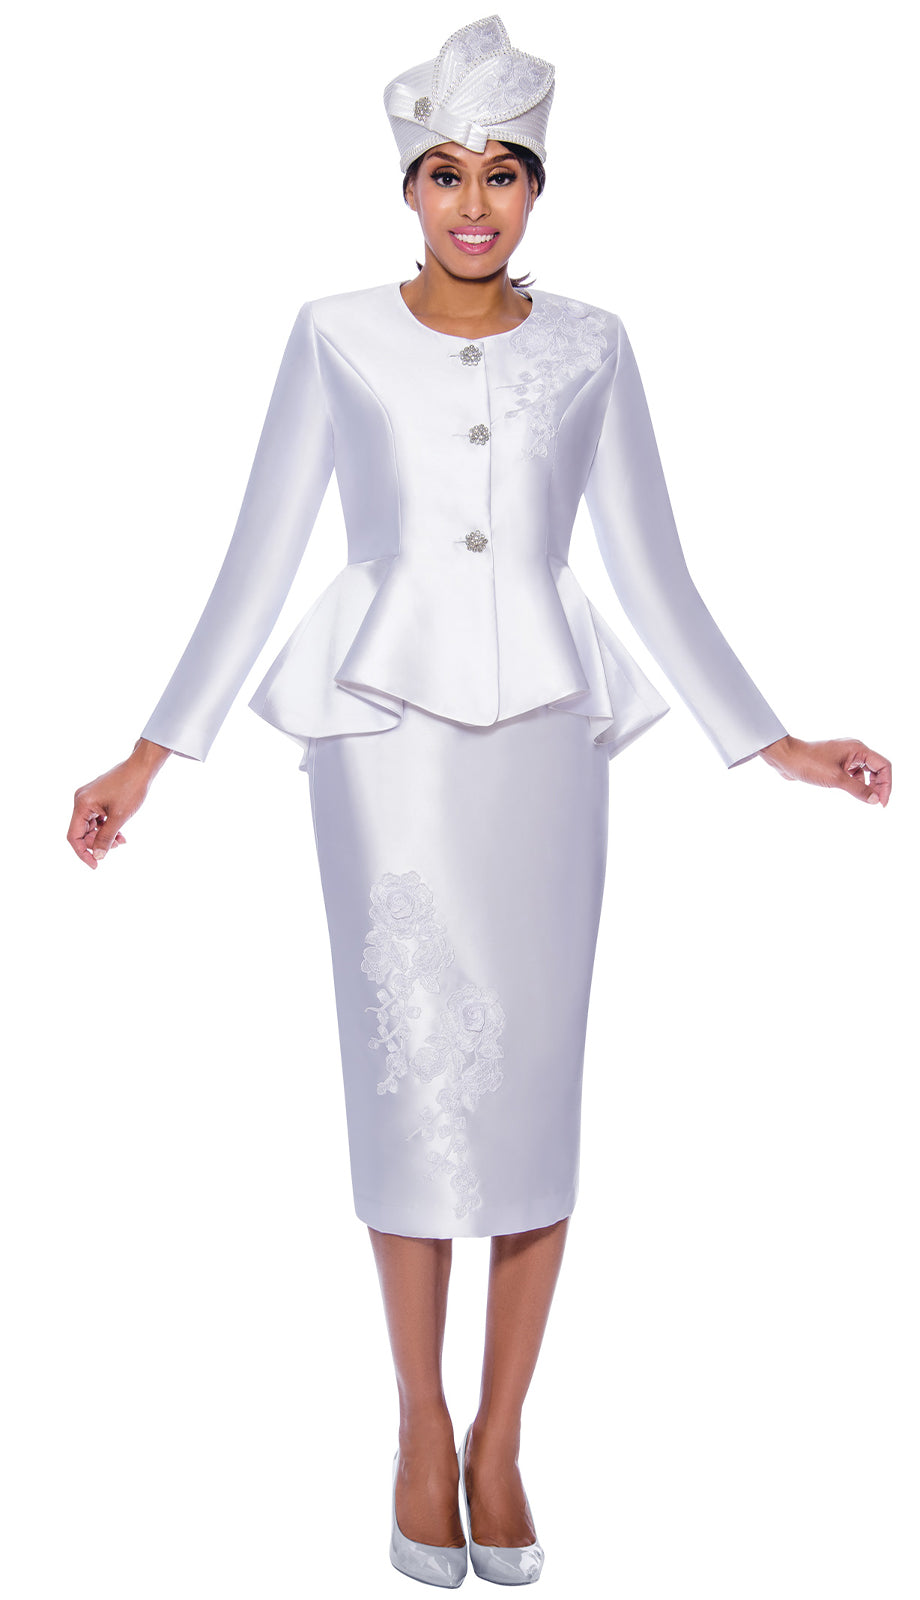 GMI Suit 8072-White - Church Suits For Less